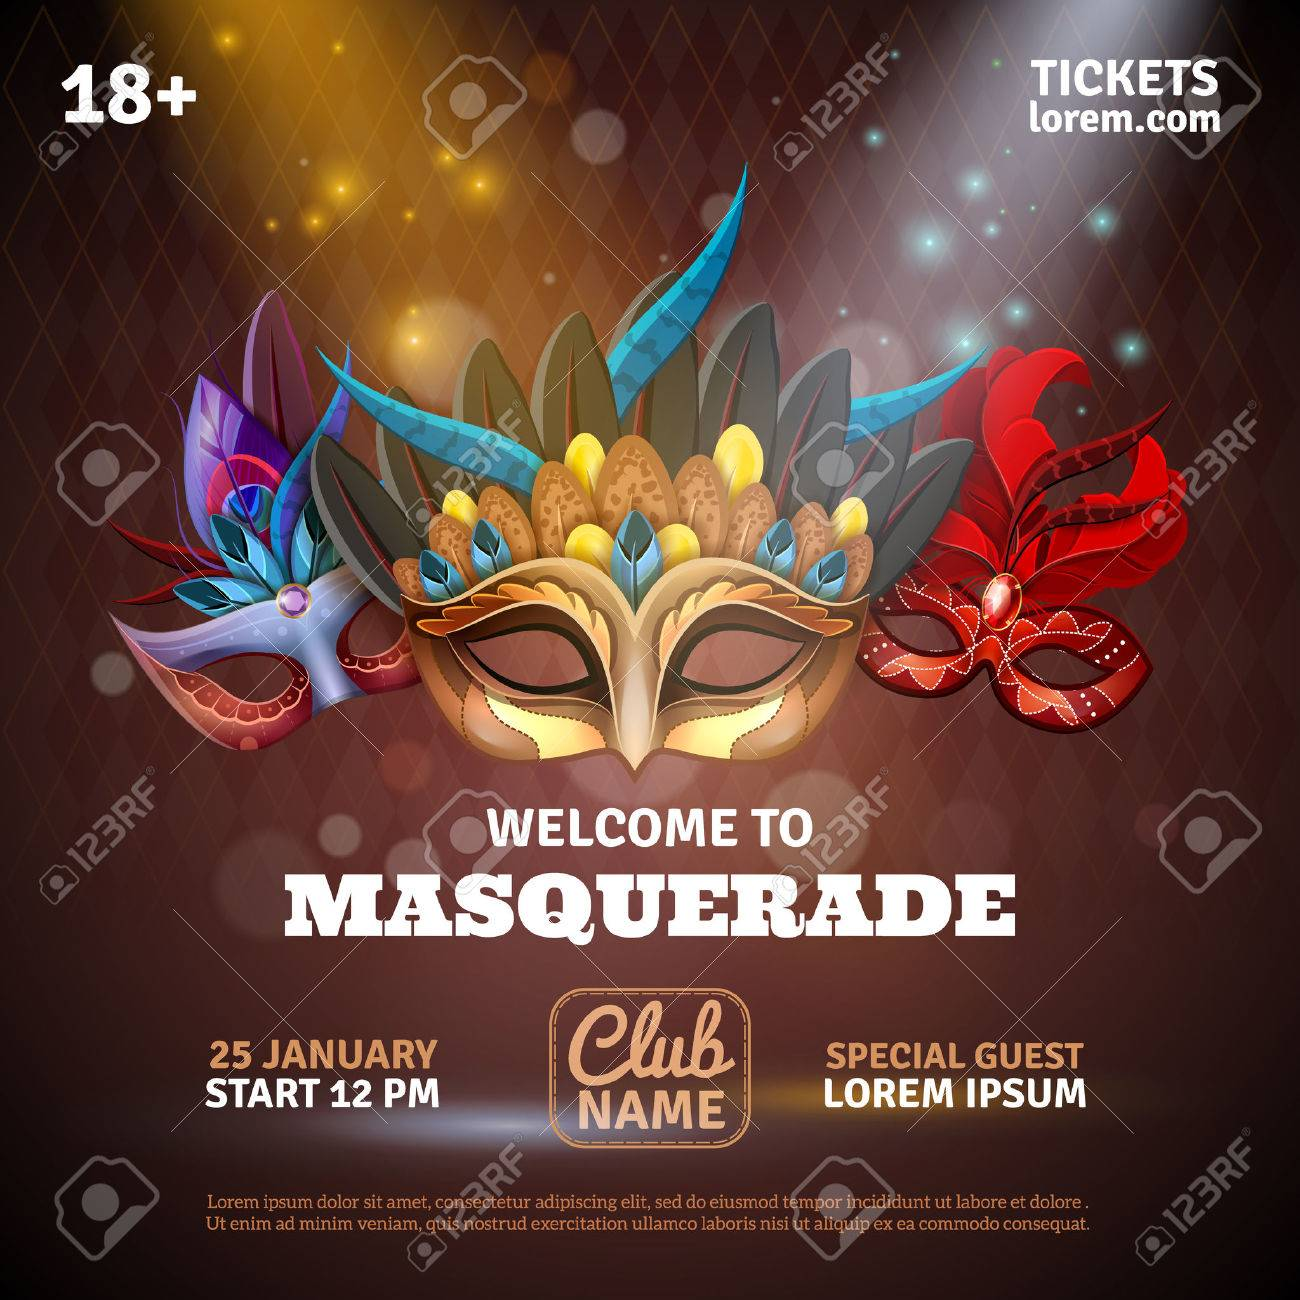 Masquerade realistic poster with party tickets and club symbols vector illustration Stock Vector - 52695275